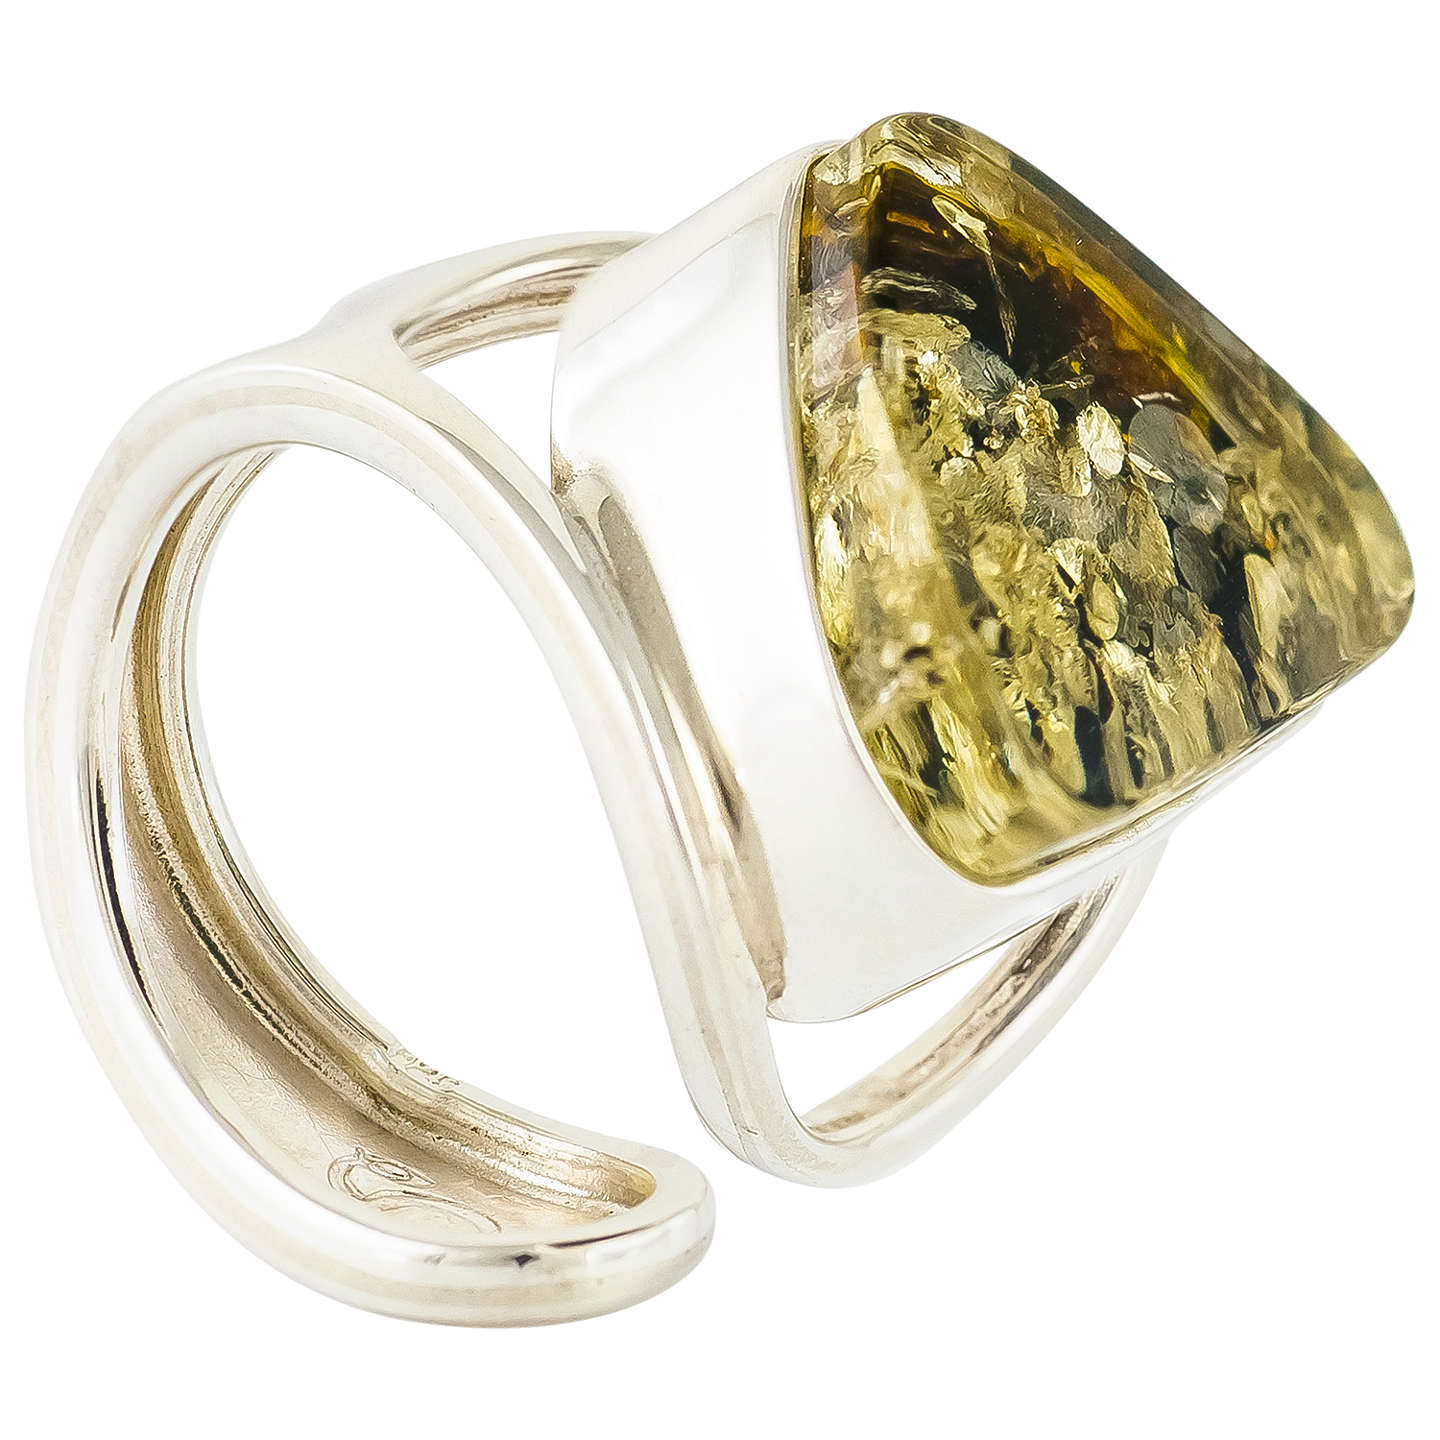 marcia ncb ring triangle trianglecocktailrngcitrinefront amber rings cocktail engagement budet ssr products citrine